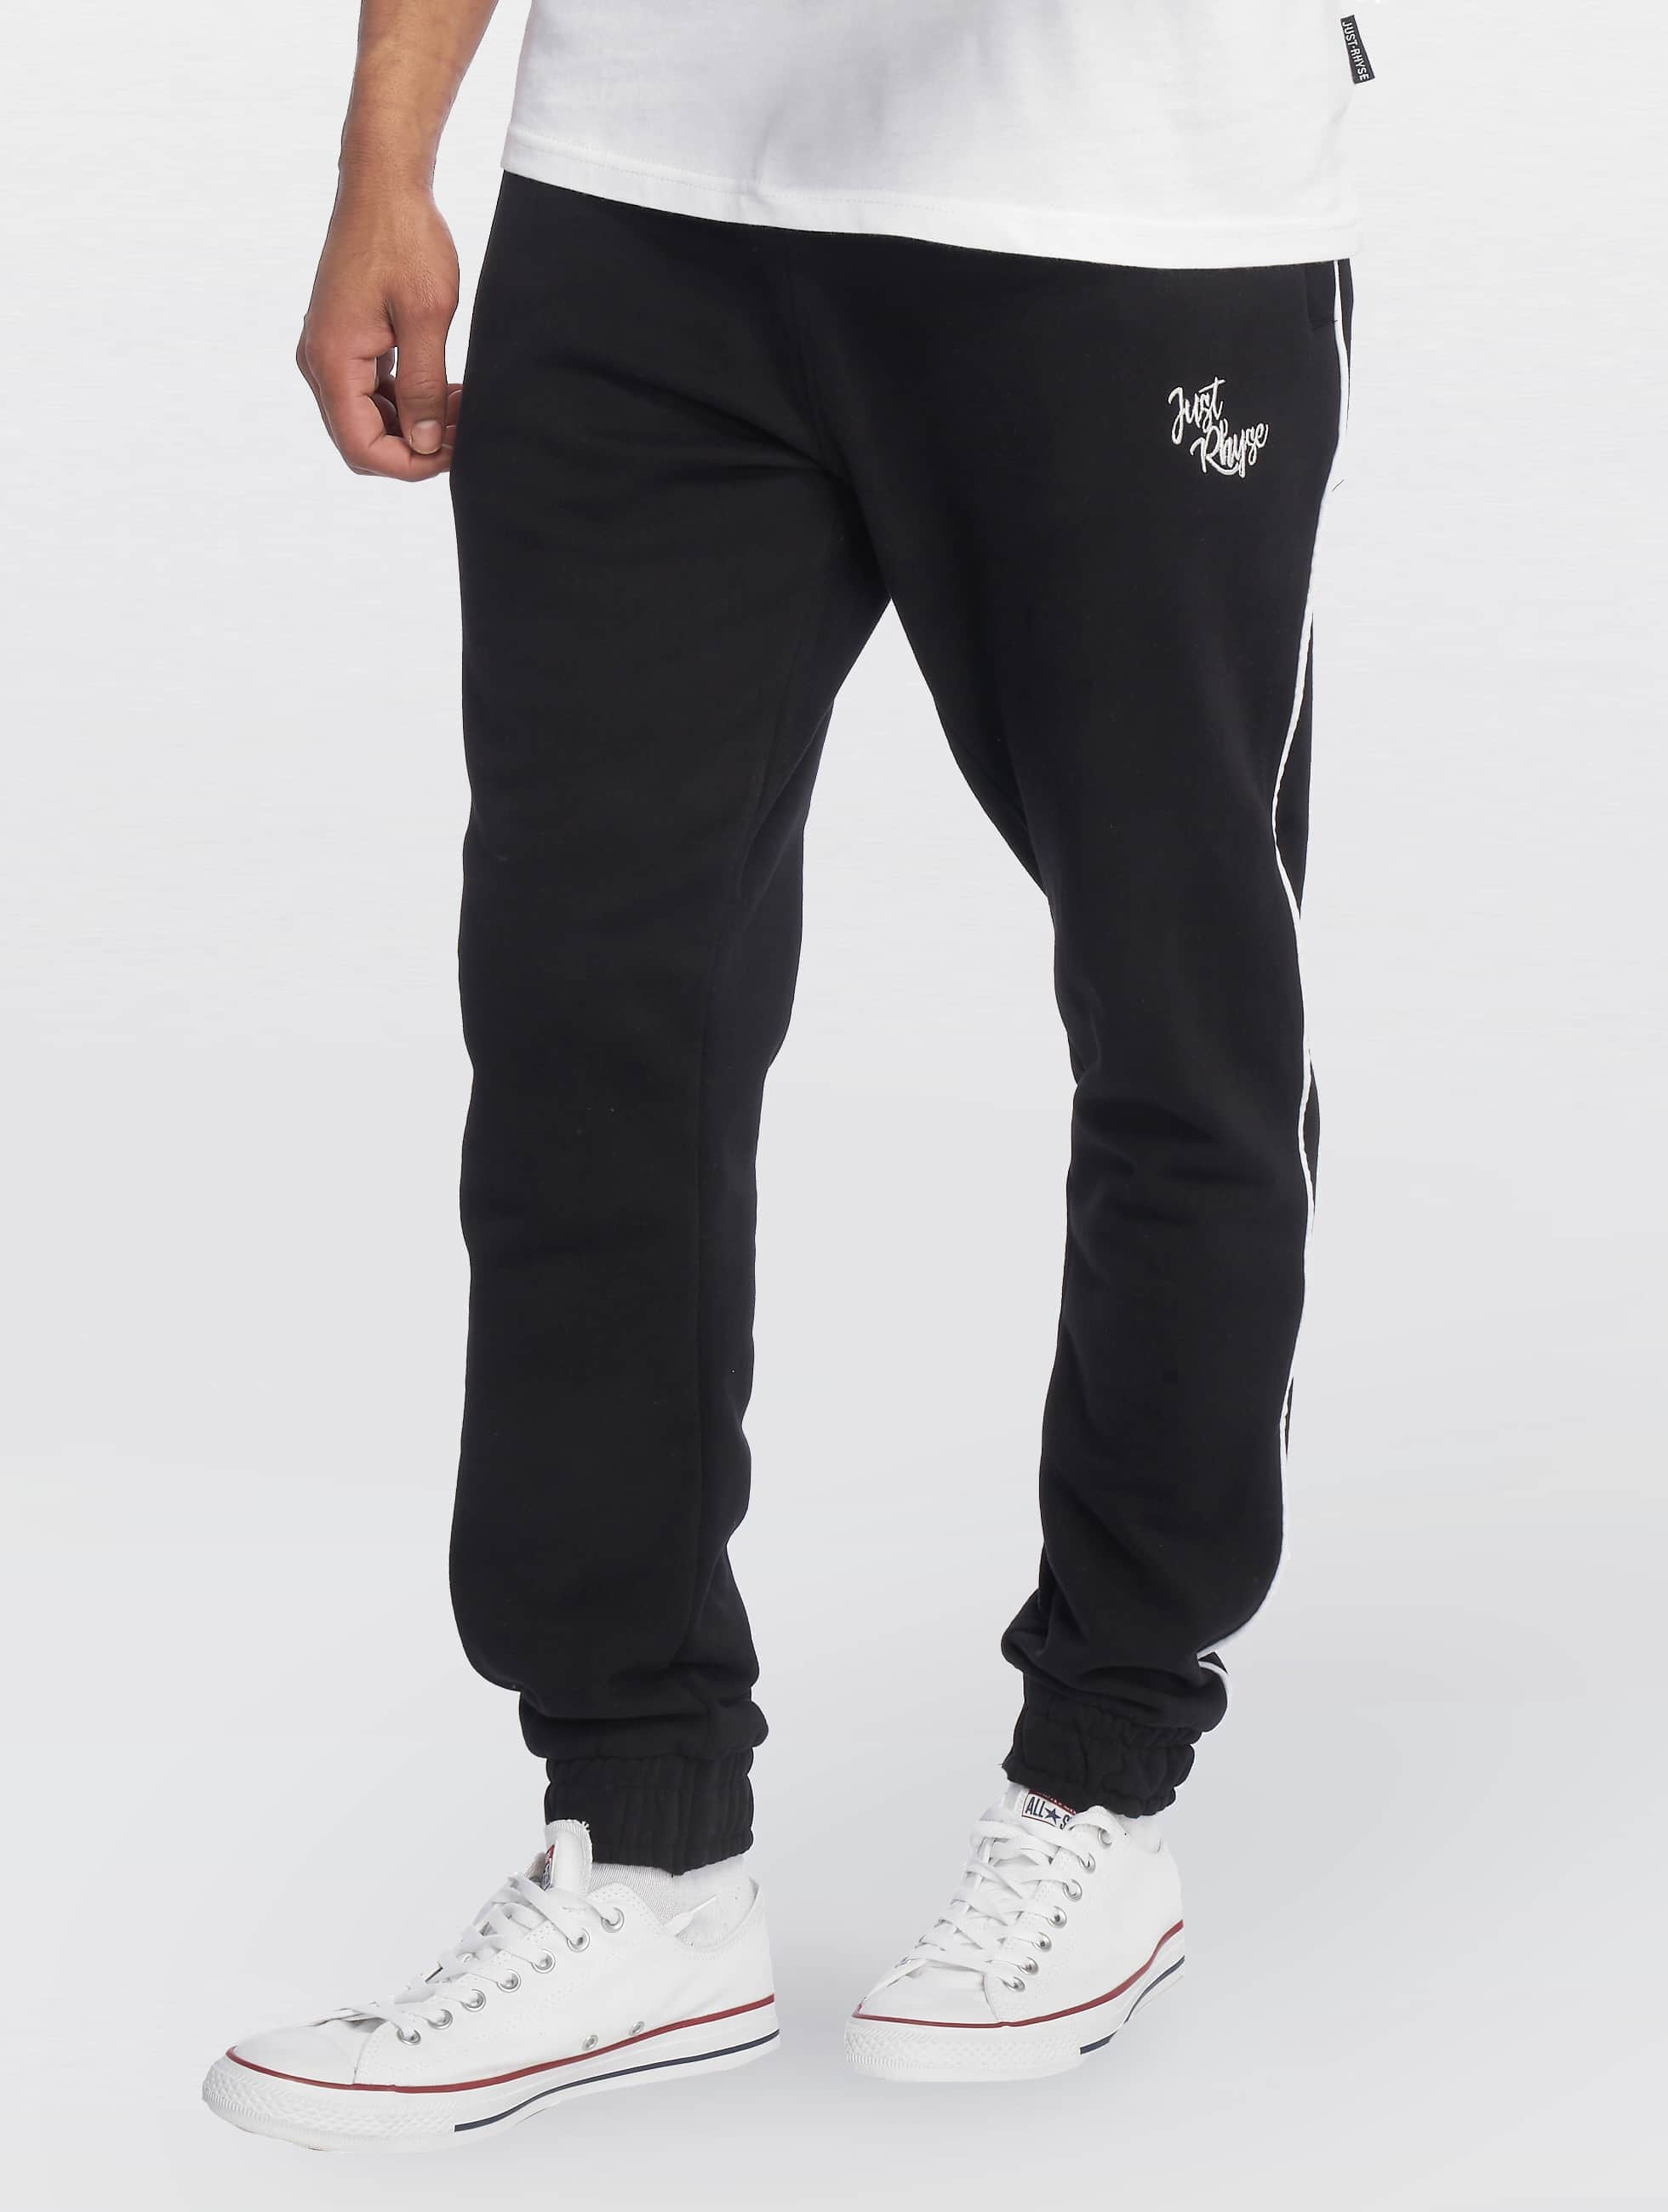 Just Rhyse / Sweat Pant Lake City in black 2XL